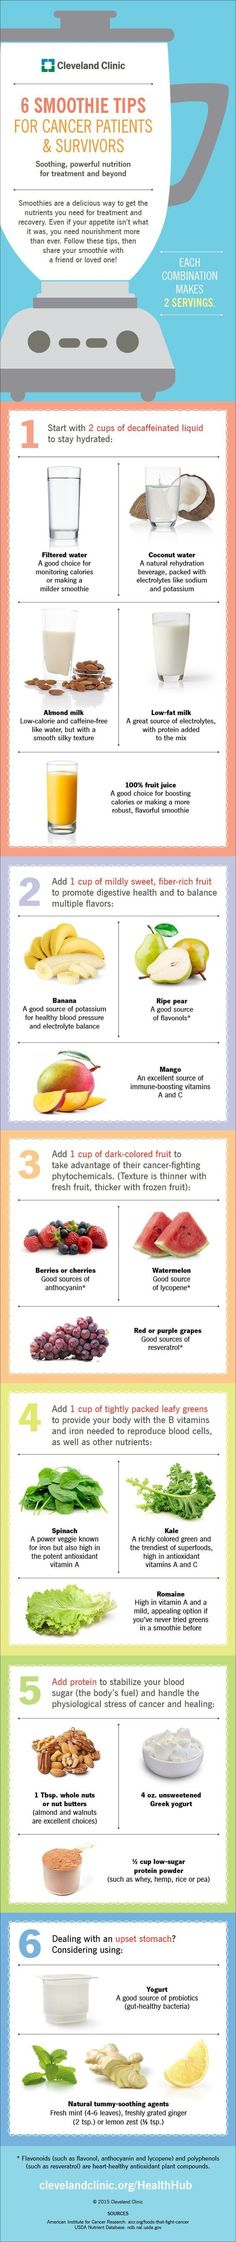 Diet Tips Eat Stop Eat - USEFUL MATERIAL: Just For U ♥♥ 6 tips for Smoothies for #cancer patients and survivors. #recipes #infographic In Just One Day This Simple Strategy Frees You From Complicated Diet Rules - And Eliminates Rebound Weight Gain